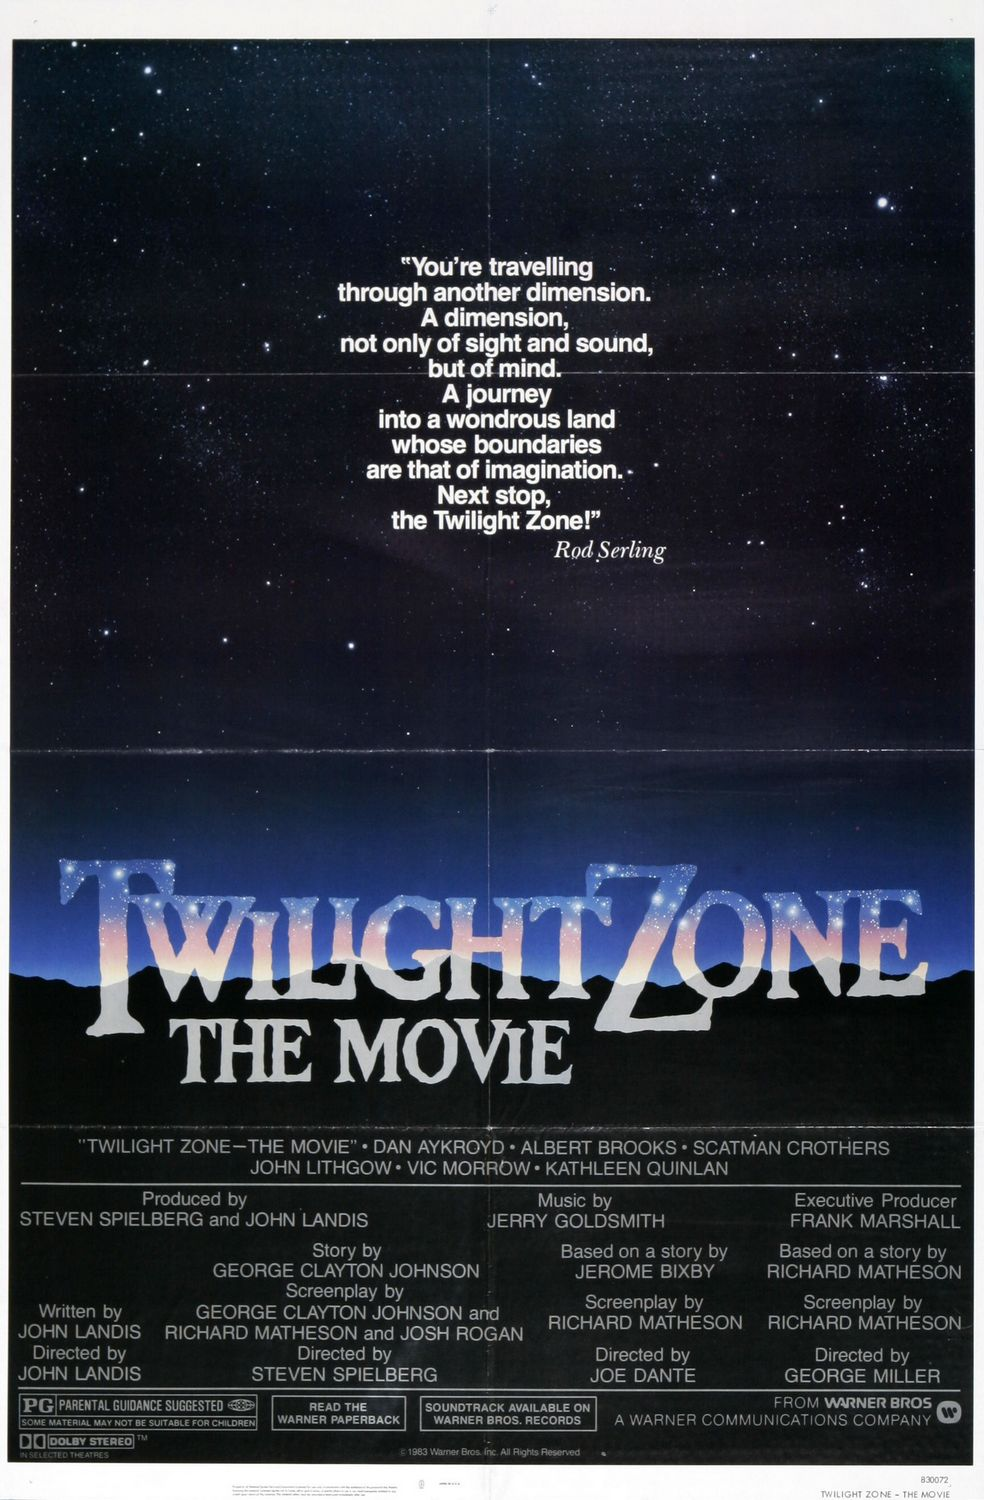 Twilight Zone The Movie poster